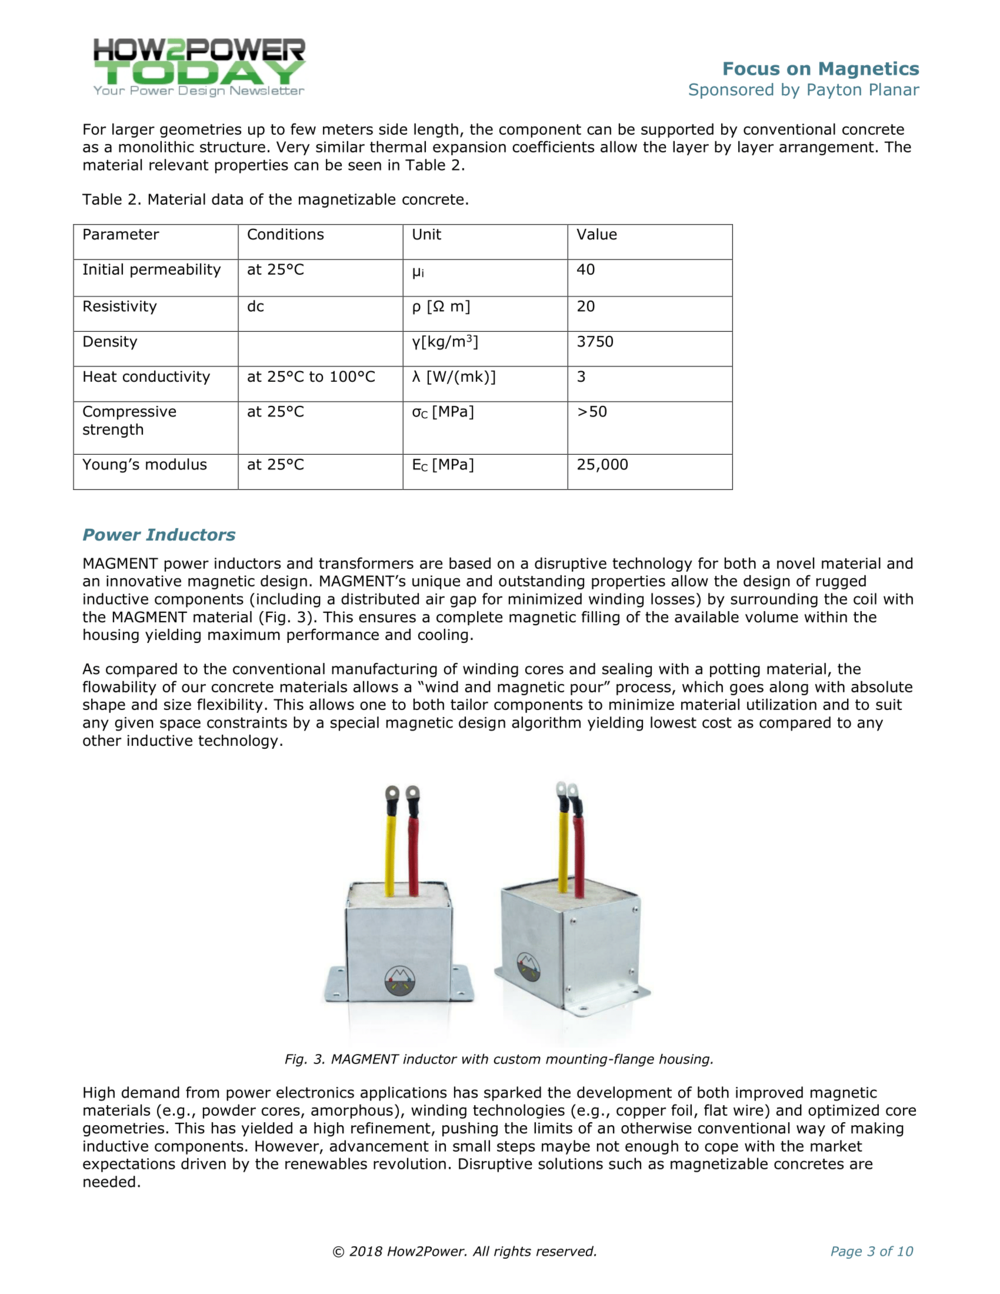 H2PowerToday1804_FocusOnMagnetics-03.png